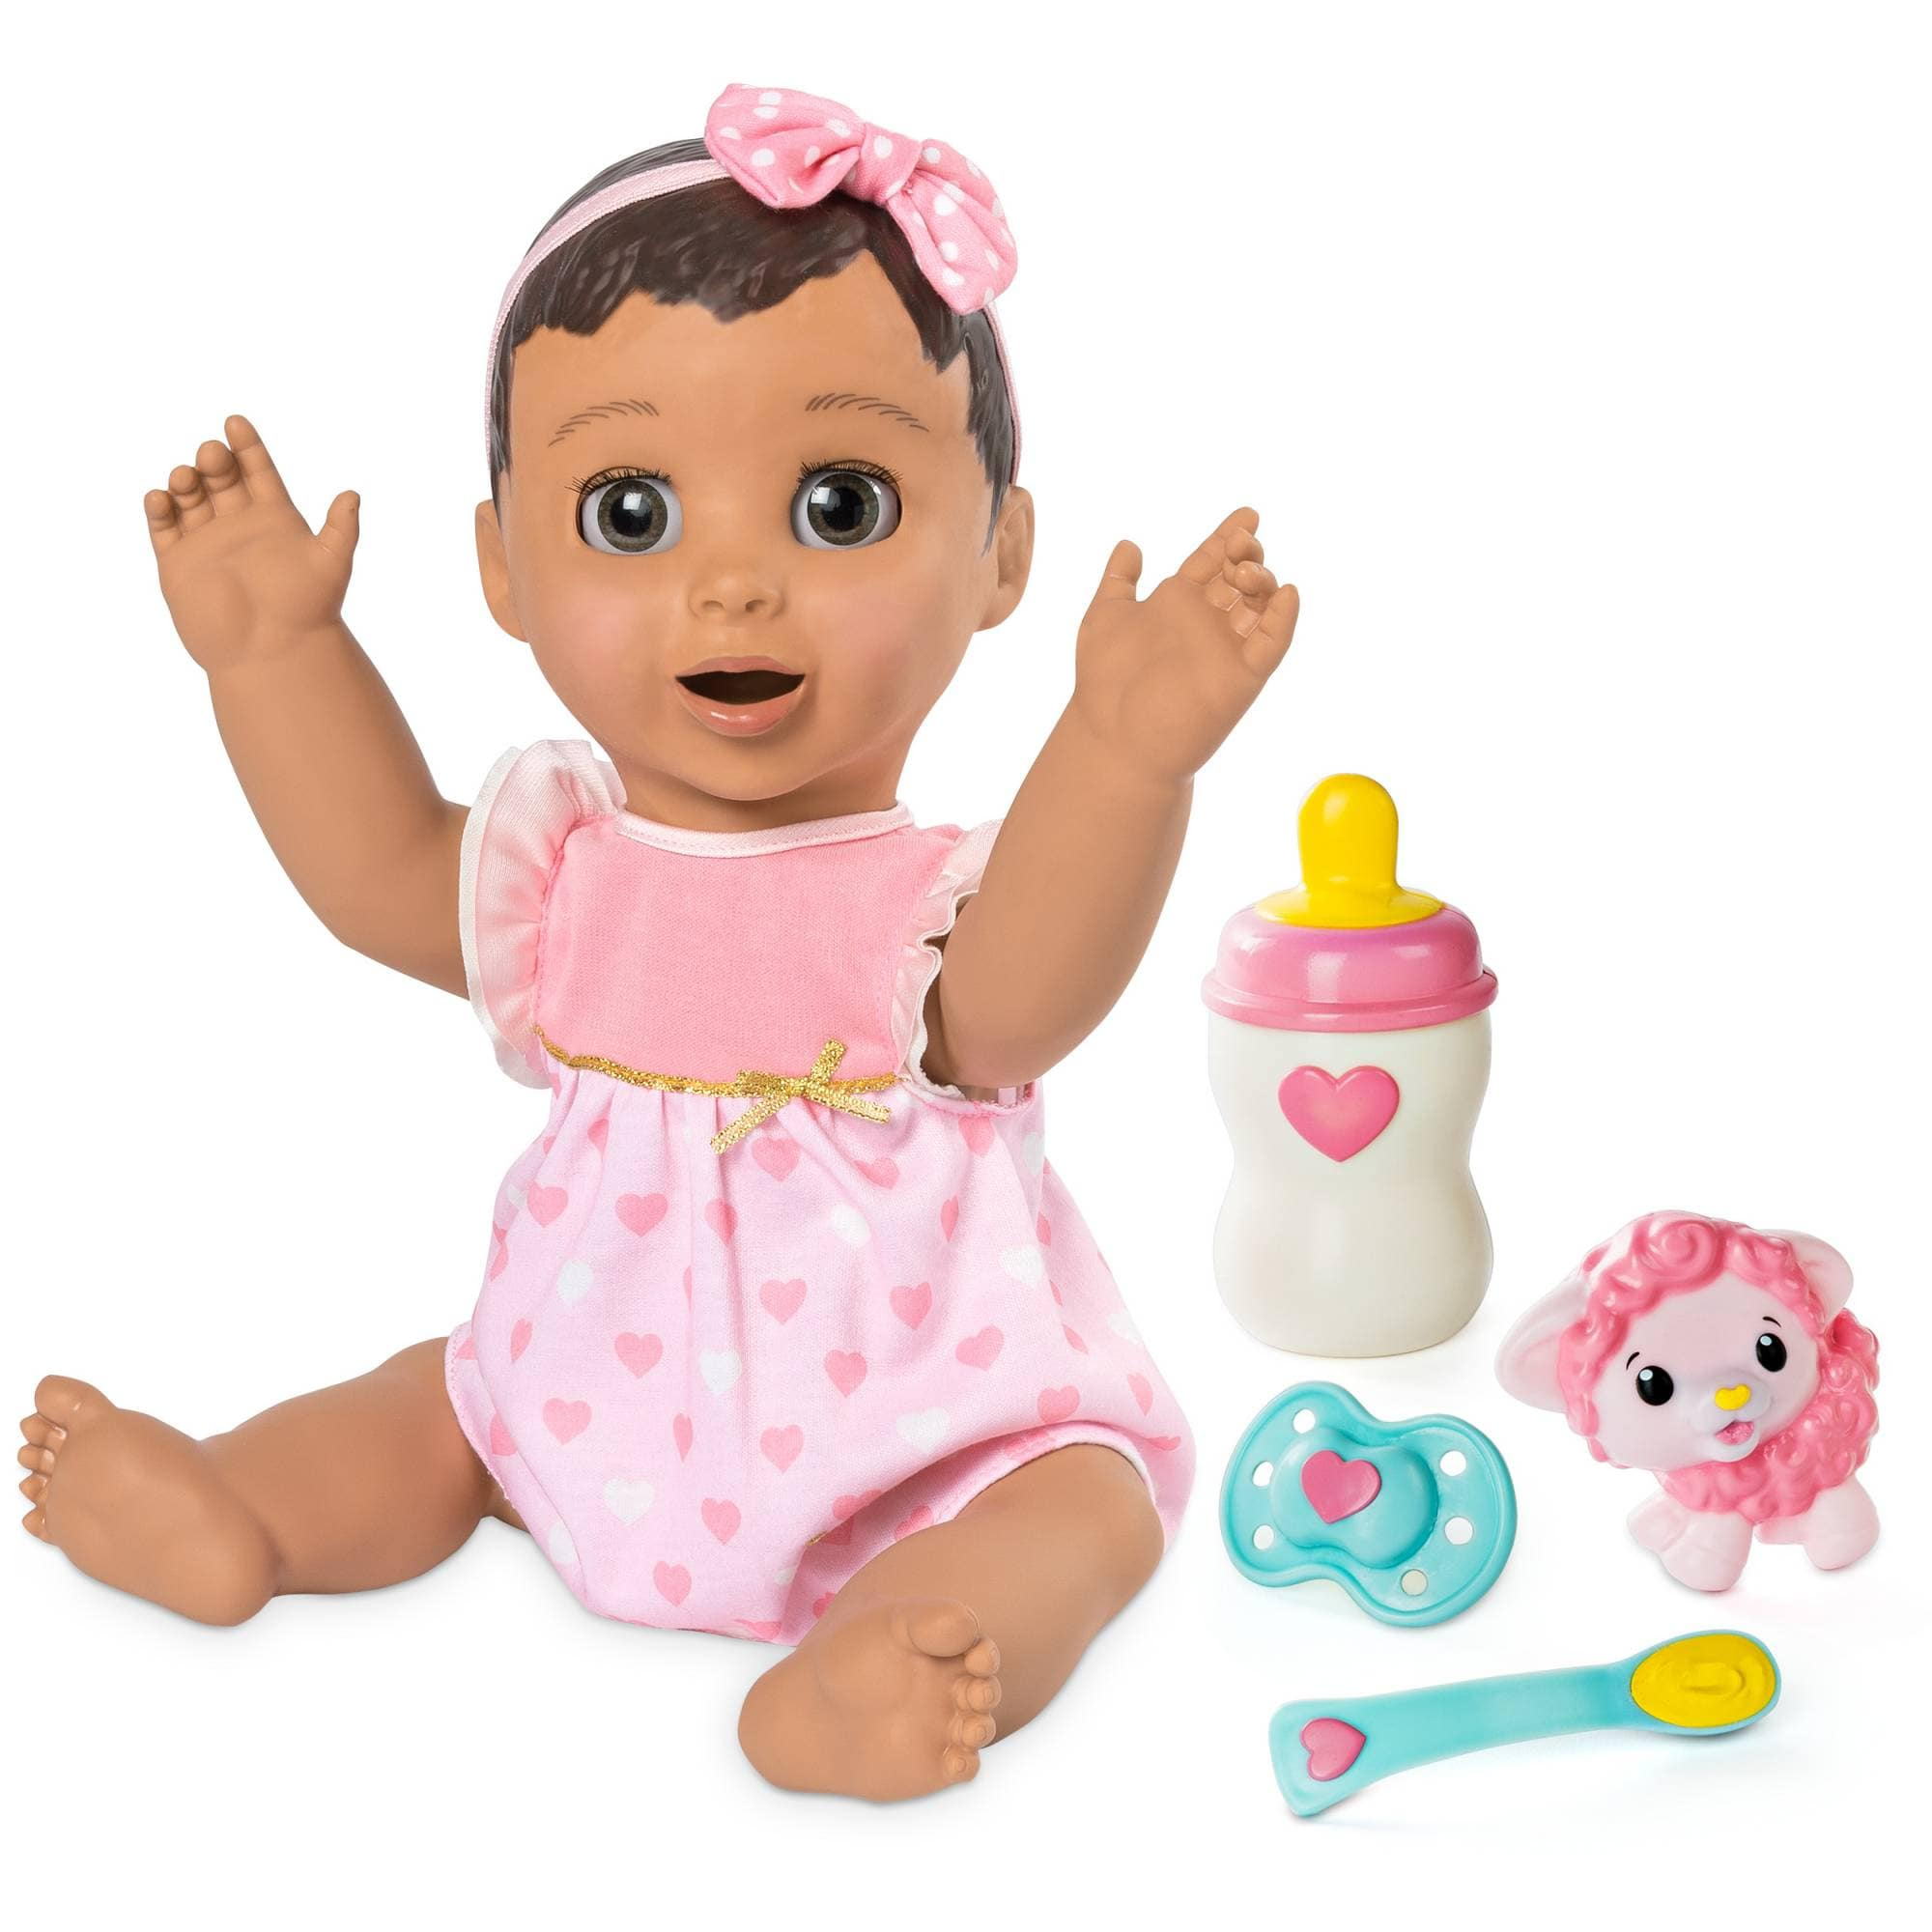 Luvabella Dolls African, Brunette and Blonde  on sale for 89.99 + Tax  -10 dollar coupon + free shipping target ymmv store pickup +